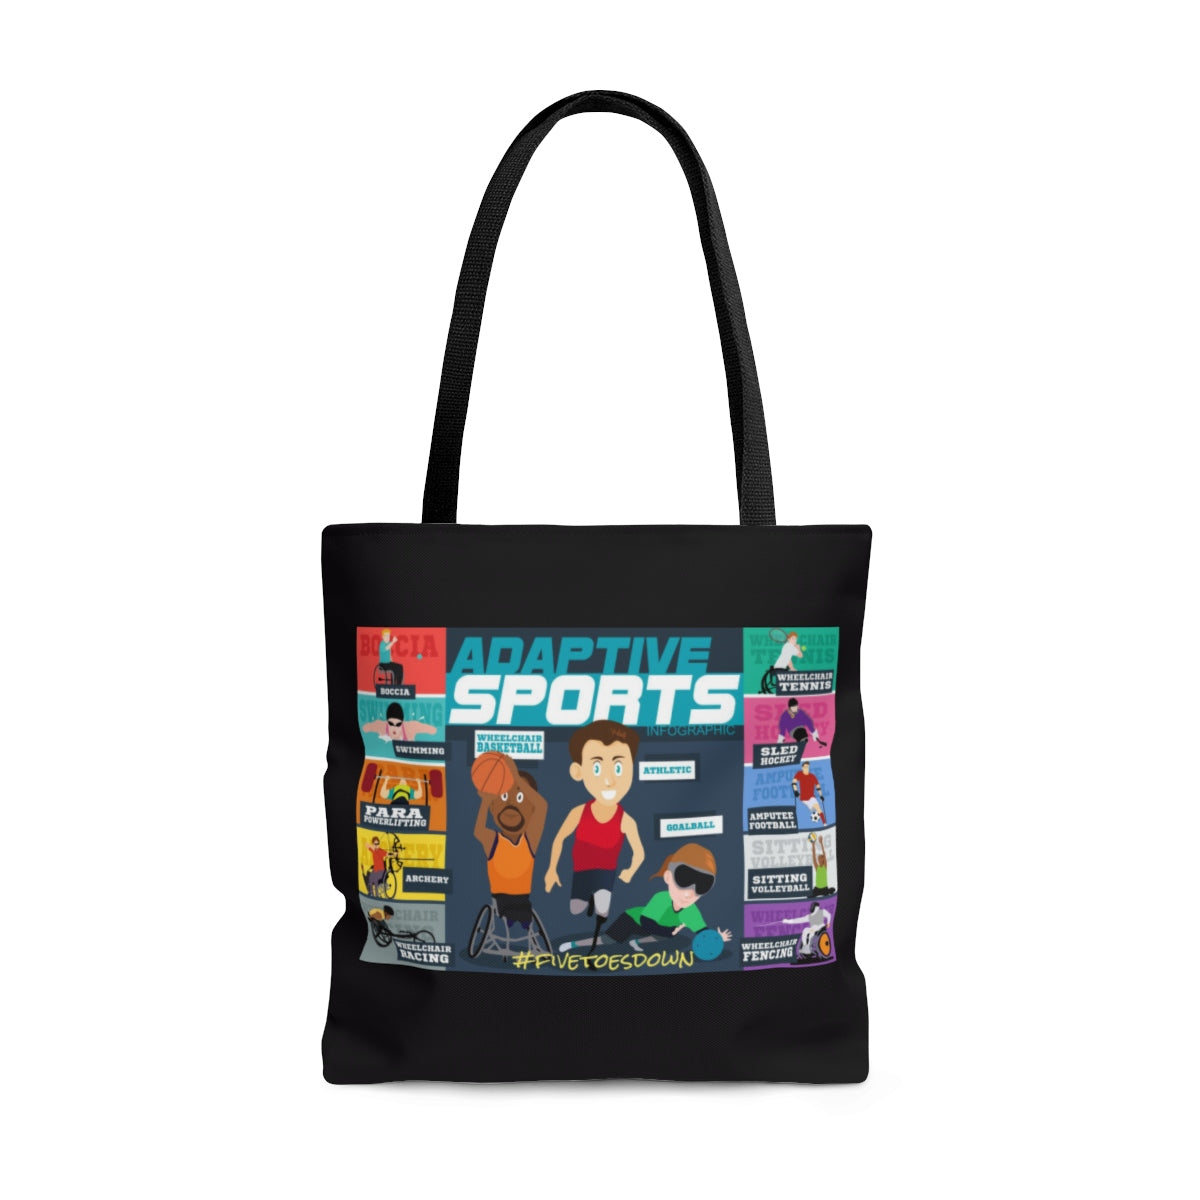 Five Toes Down Amp Sports Tote Bag